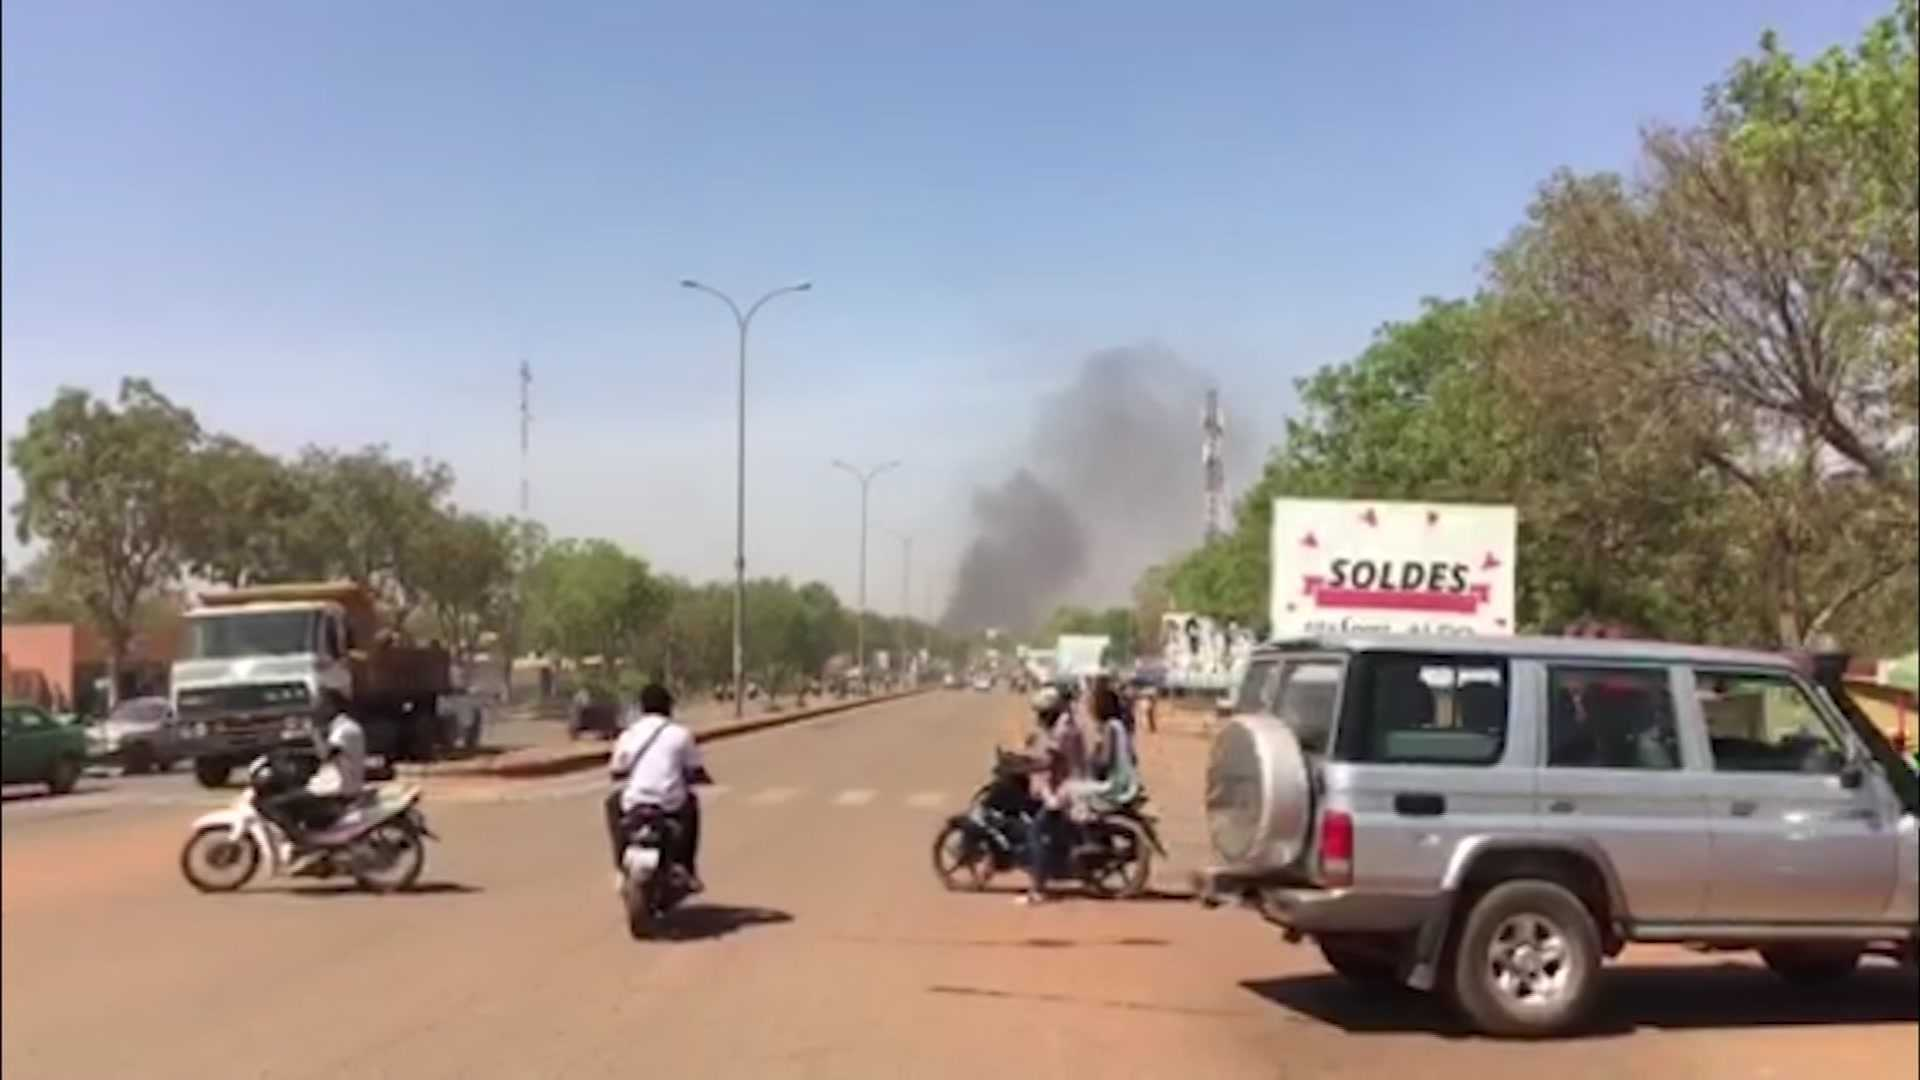 Armed men attack French embassy in Burkina Faso